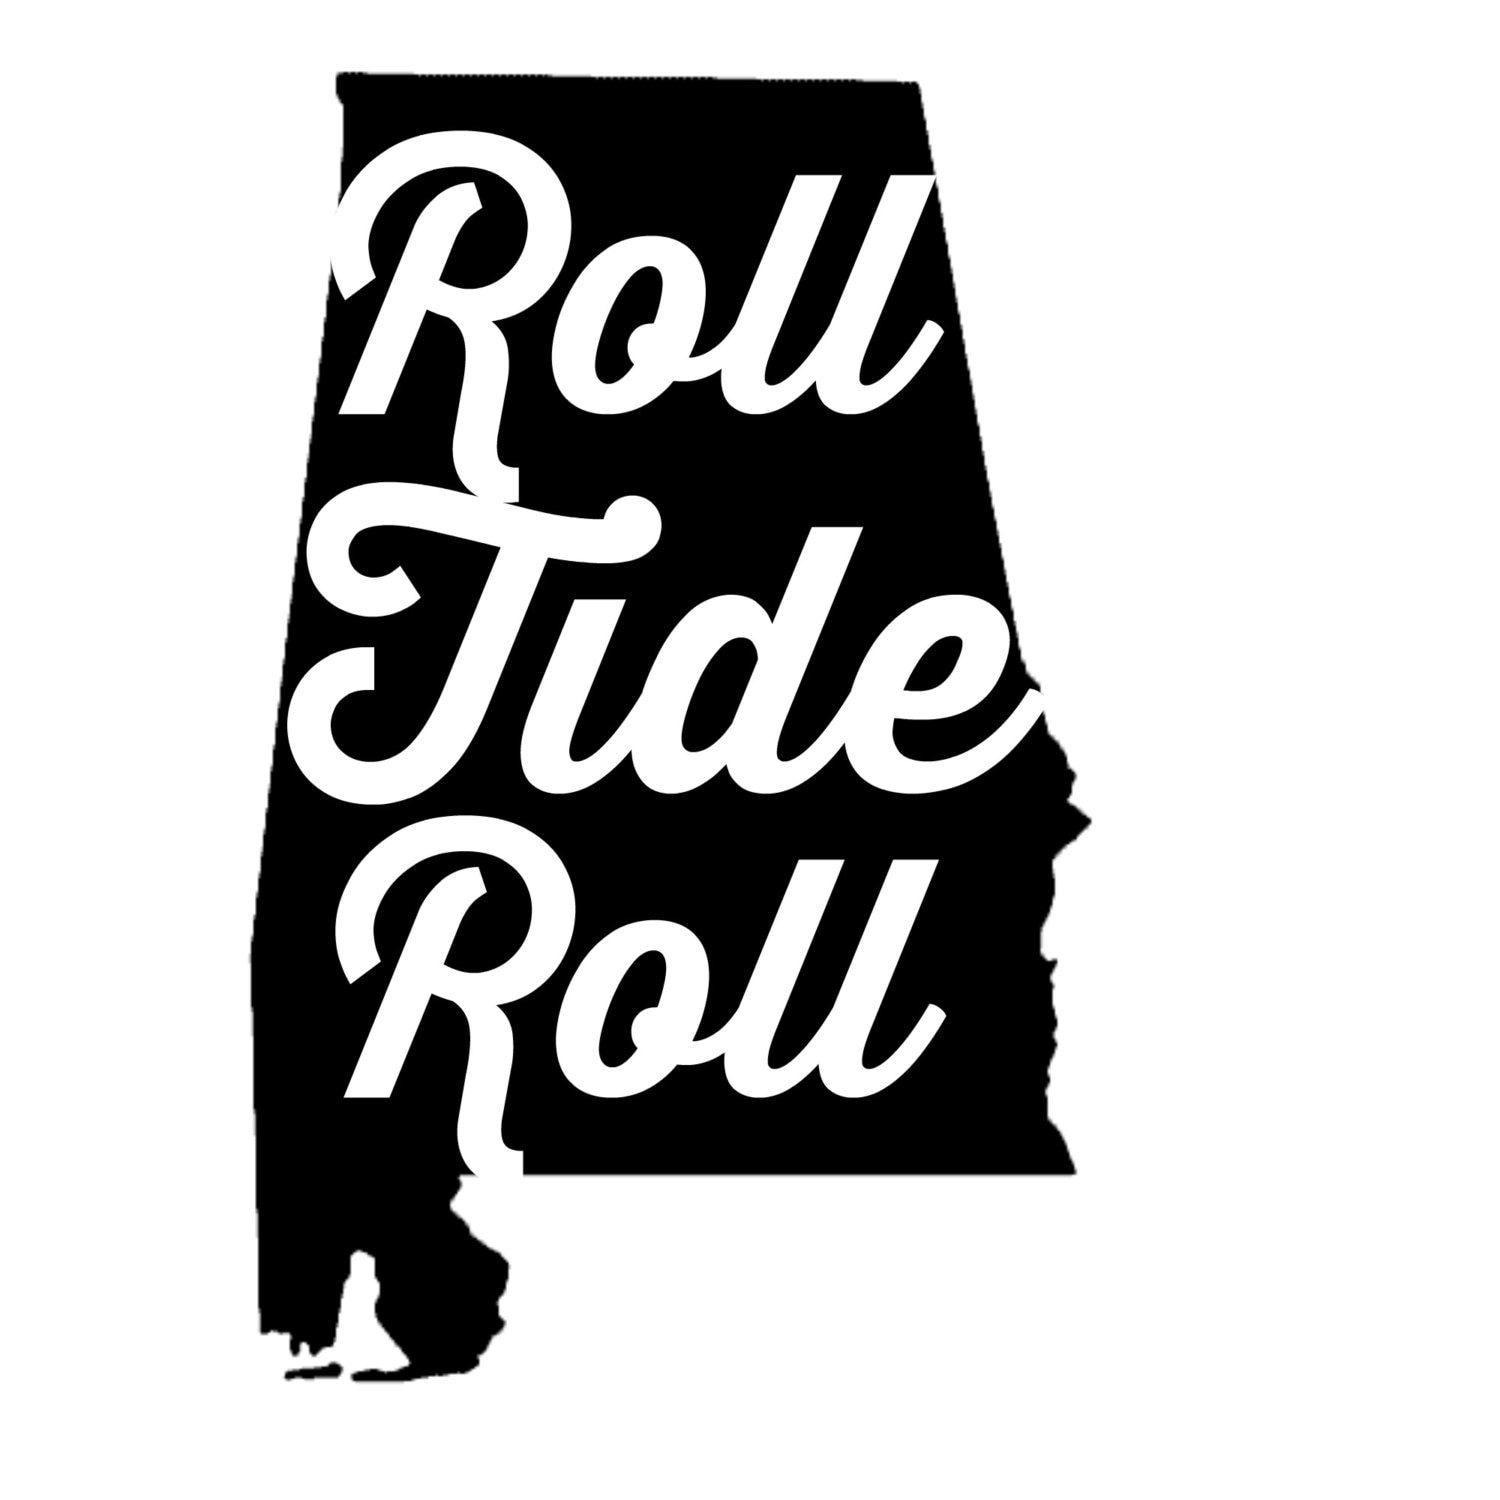 Roll tide roll alabama football decal by decalsbyannabelle for Alabama football mural